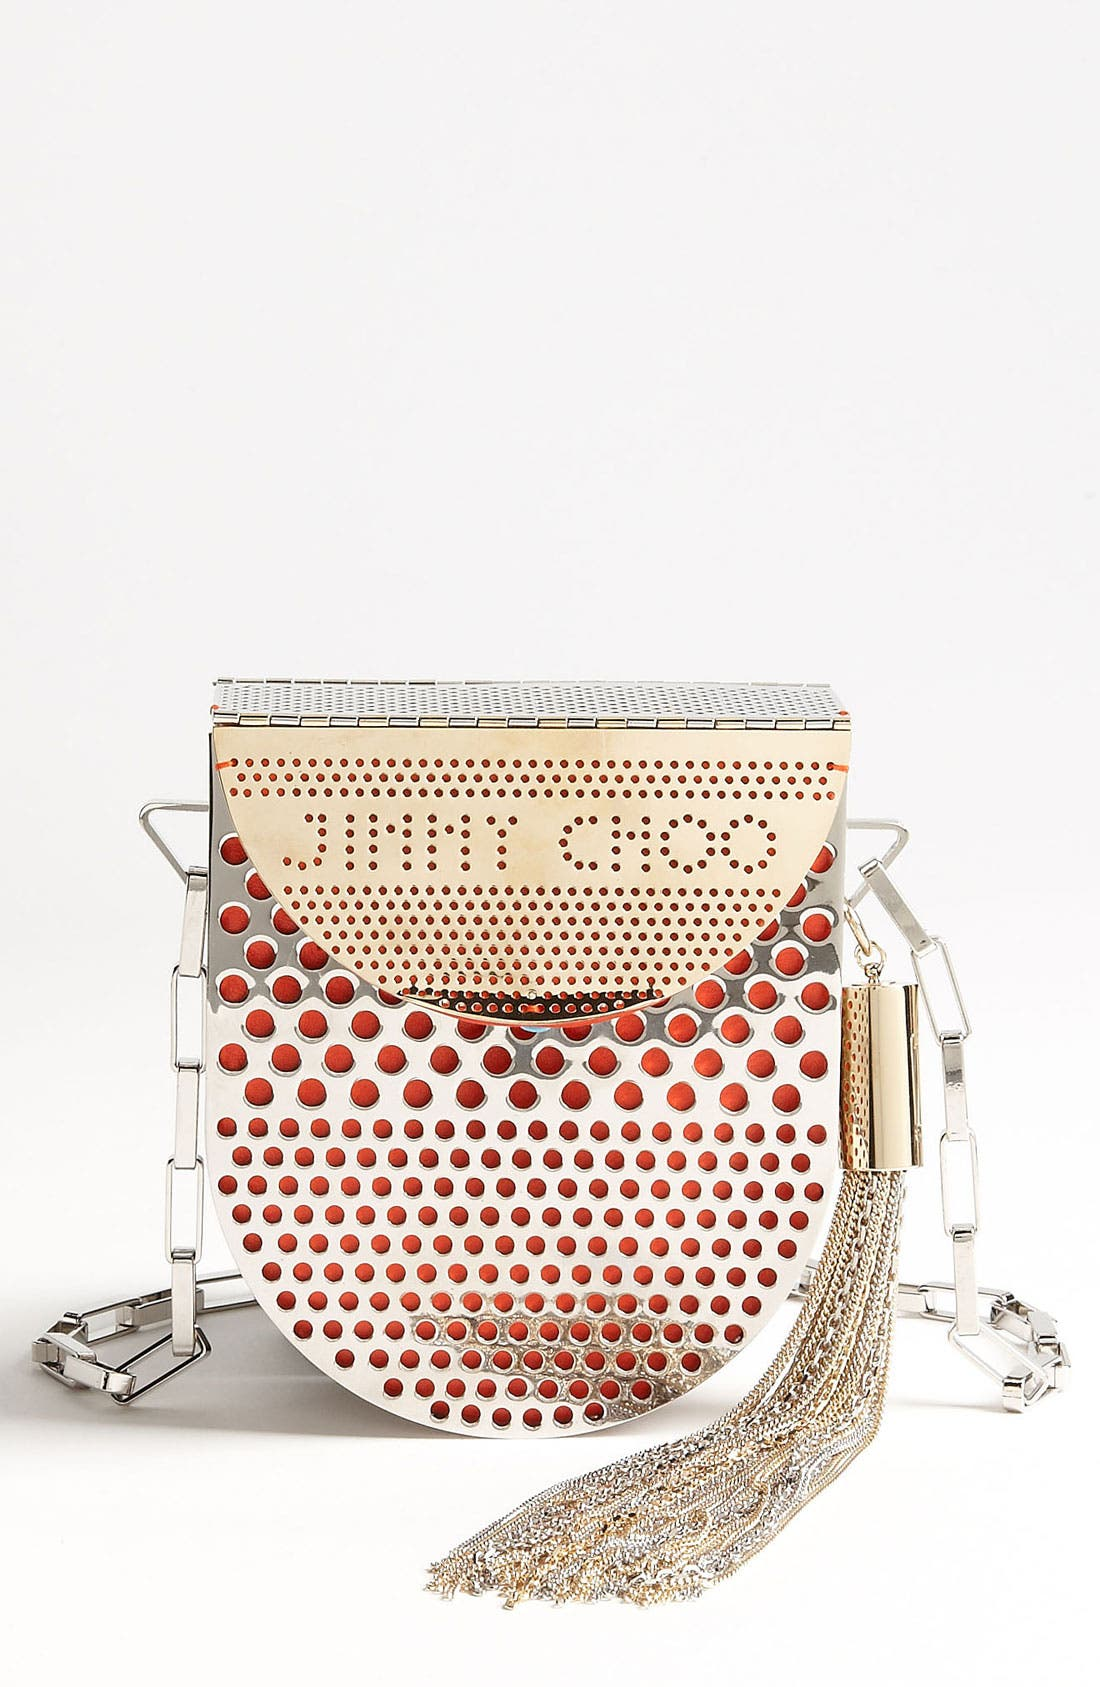 Alternate Image 1 Selected - Jimmy Choo 'Milla' Metal Crossbody Bag